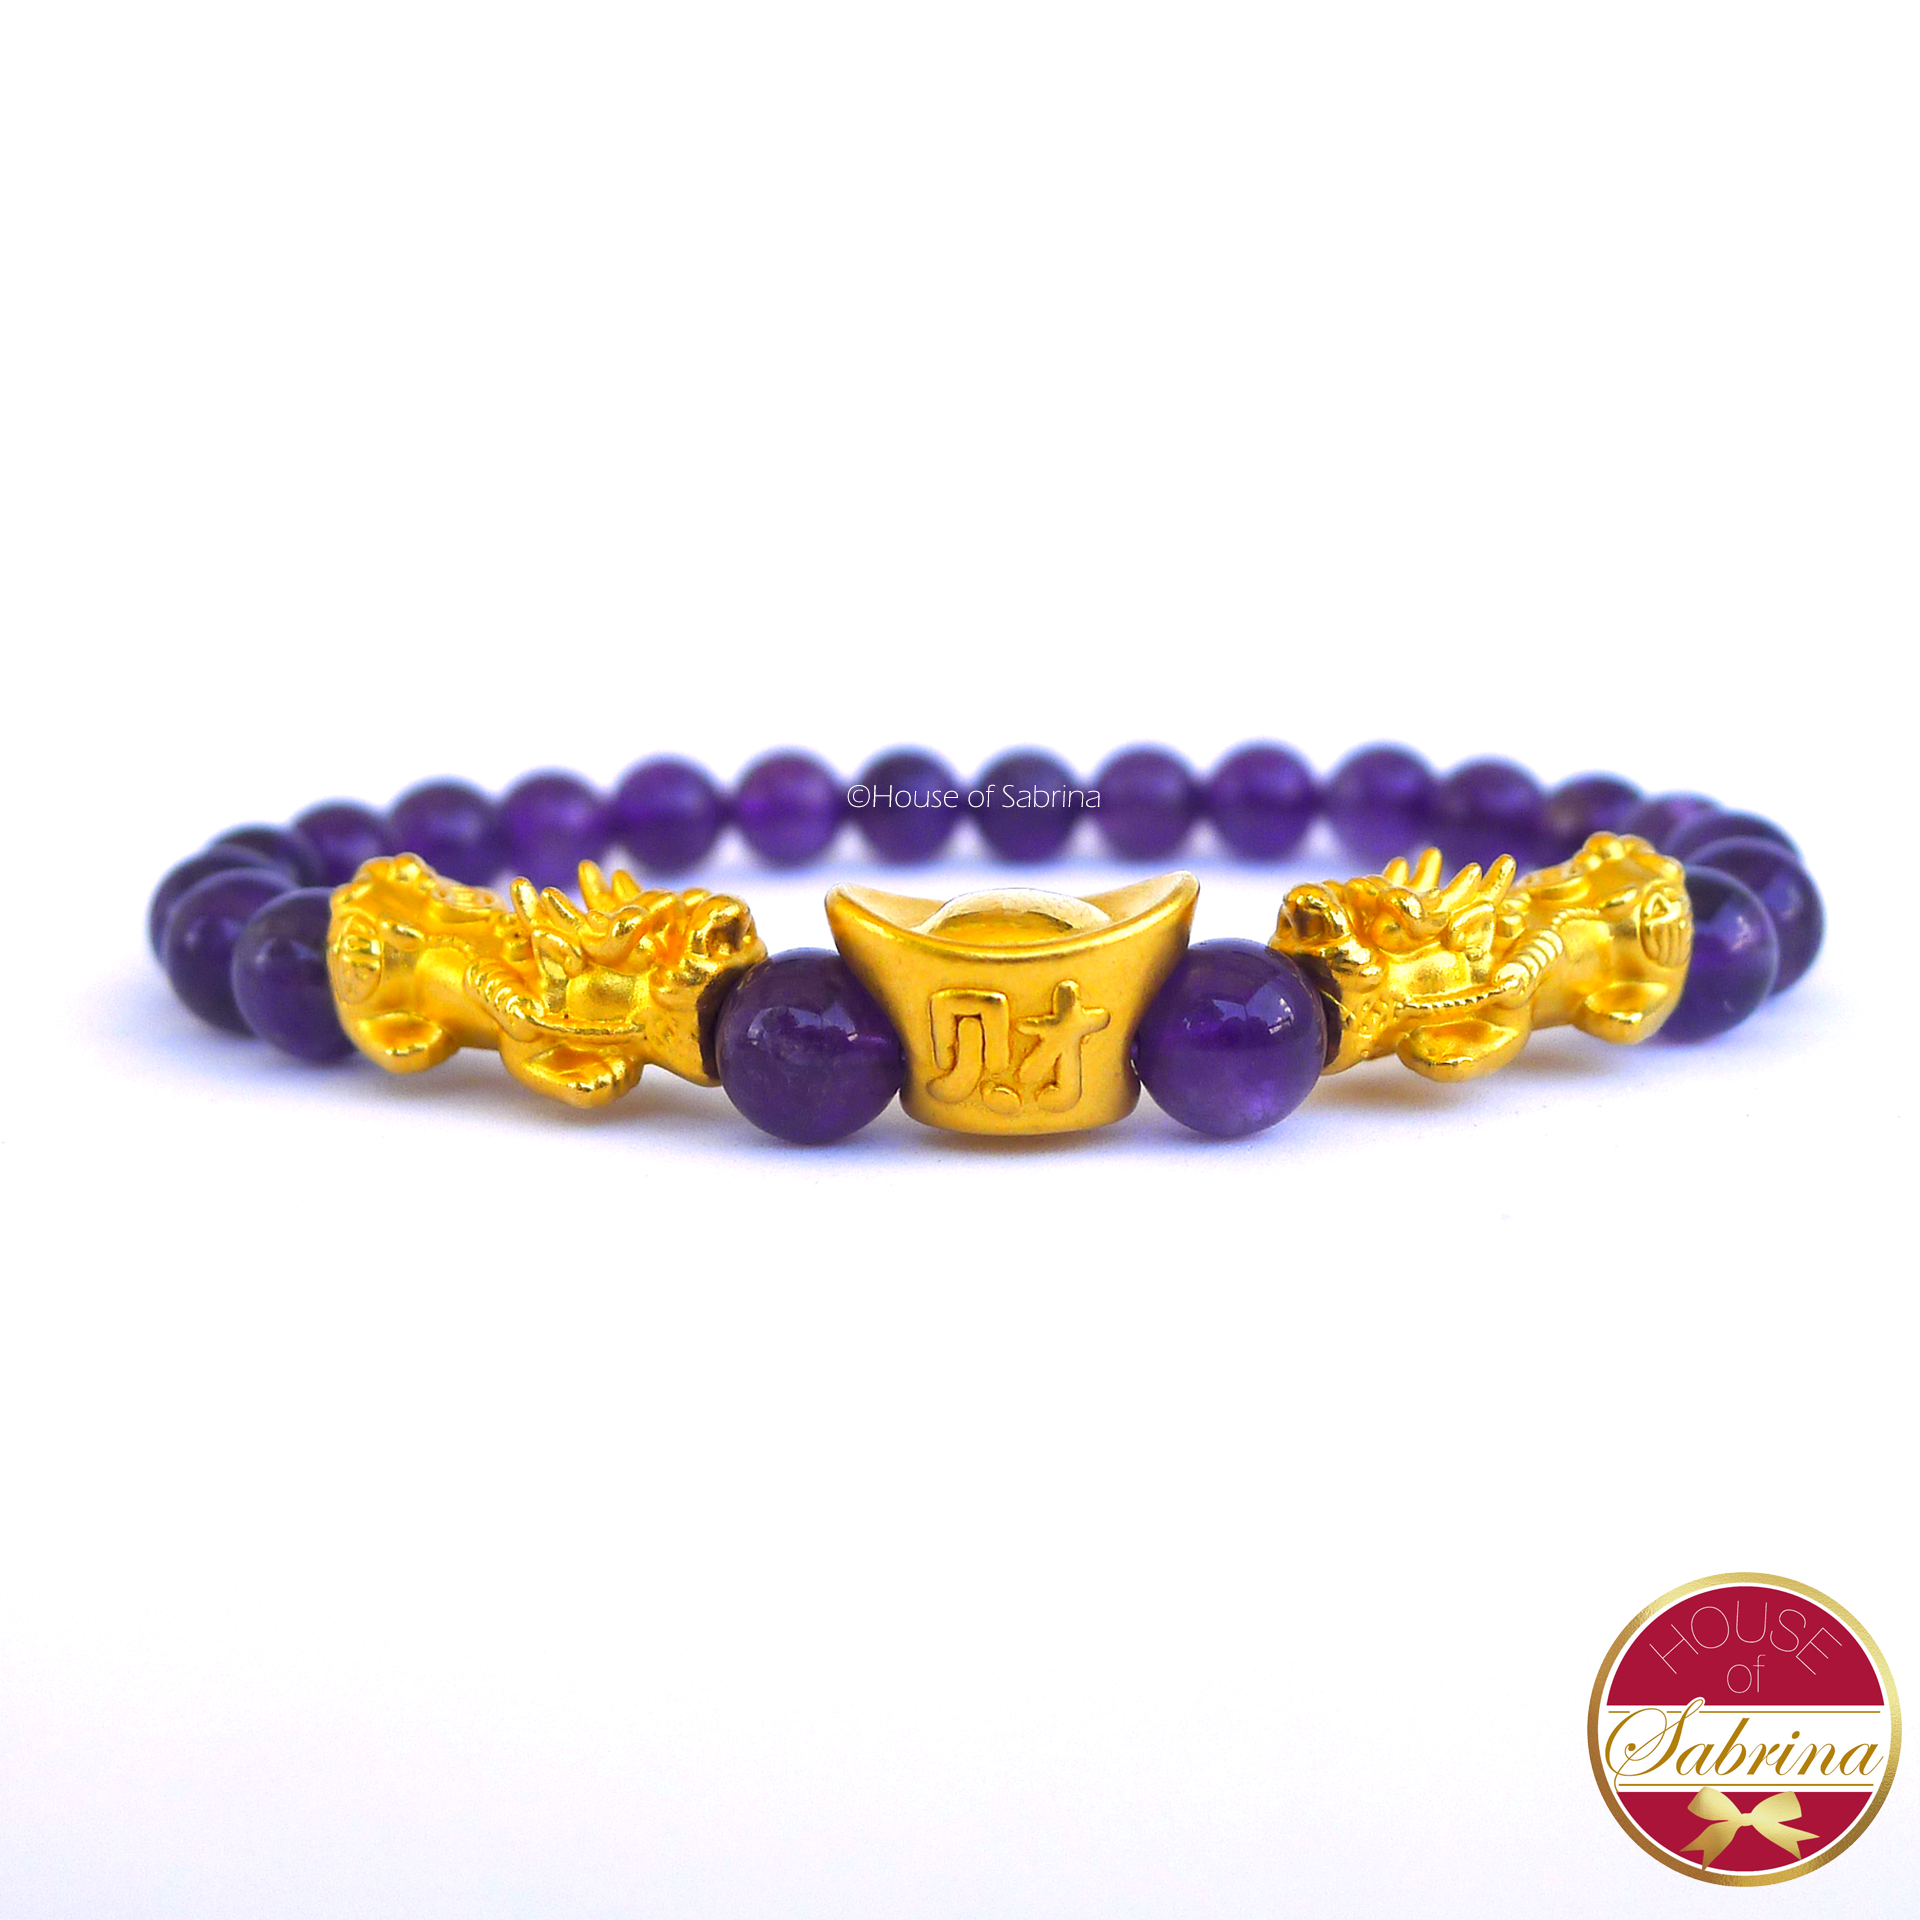 24K Gold Medium Double Pi Yao with Money Bar in Amethyst Crystal  Bracelet